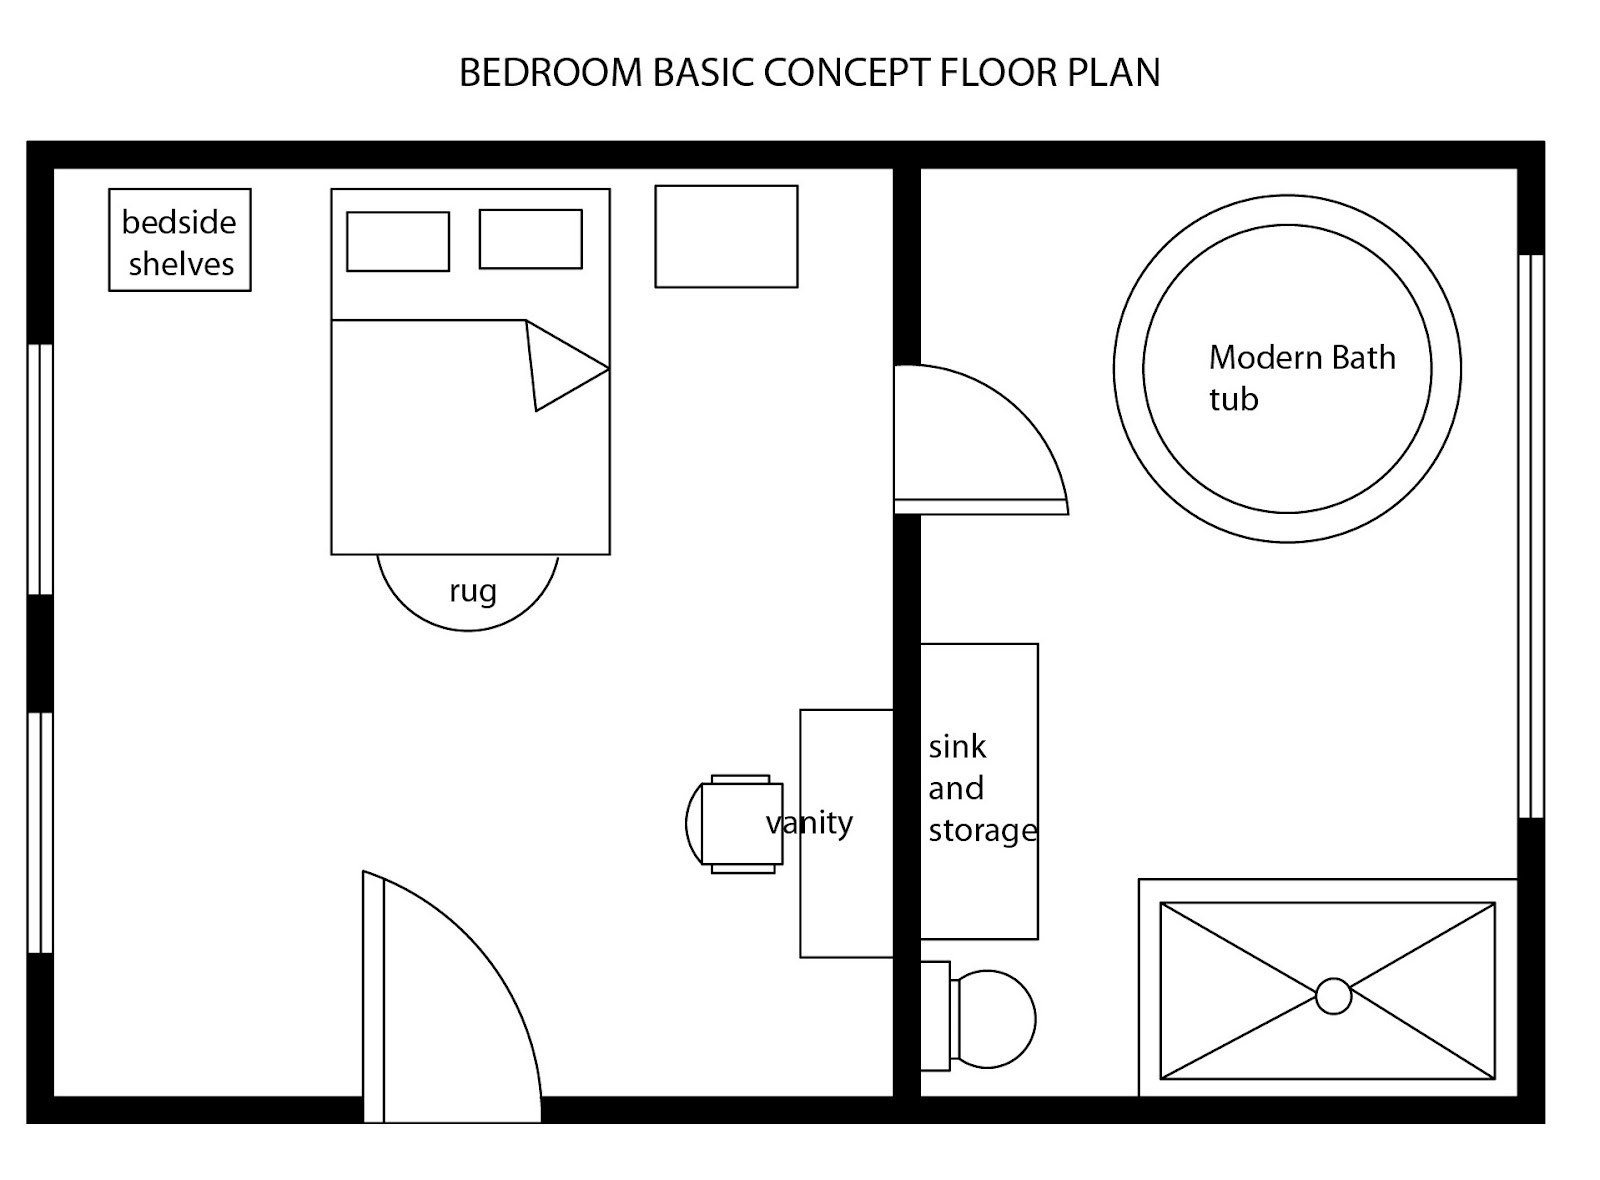 INTERIOR DESIGN & DECOR: MODERN BEDROOM BASIC FLOOR PLAN